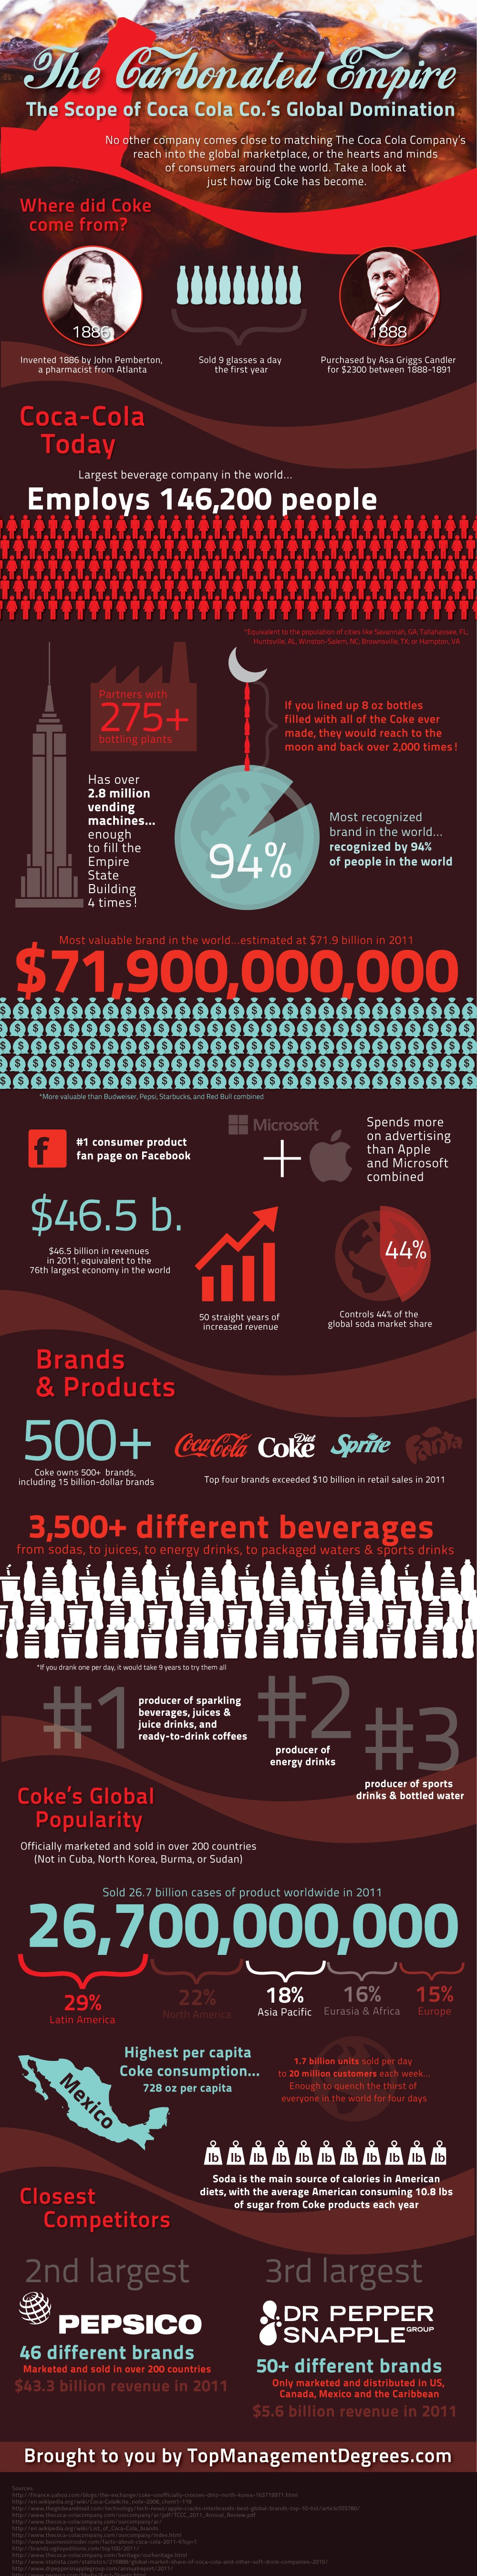 the-carbonated-empire-the-scope-coca-cola-cos-global-domination_50bf53df4c149